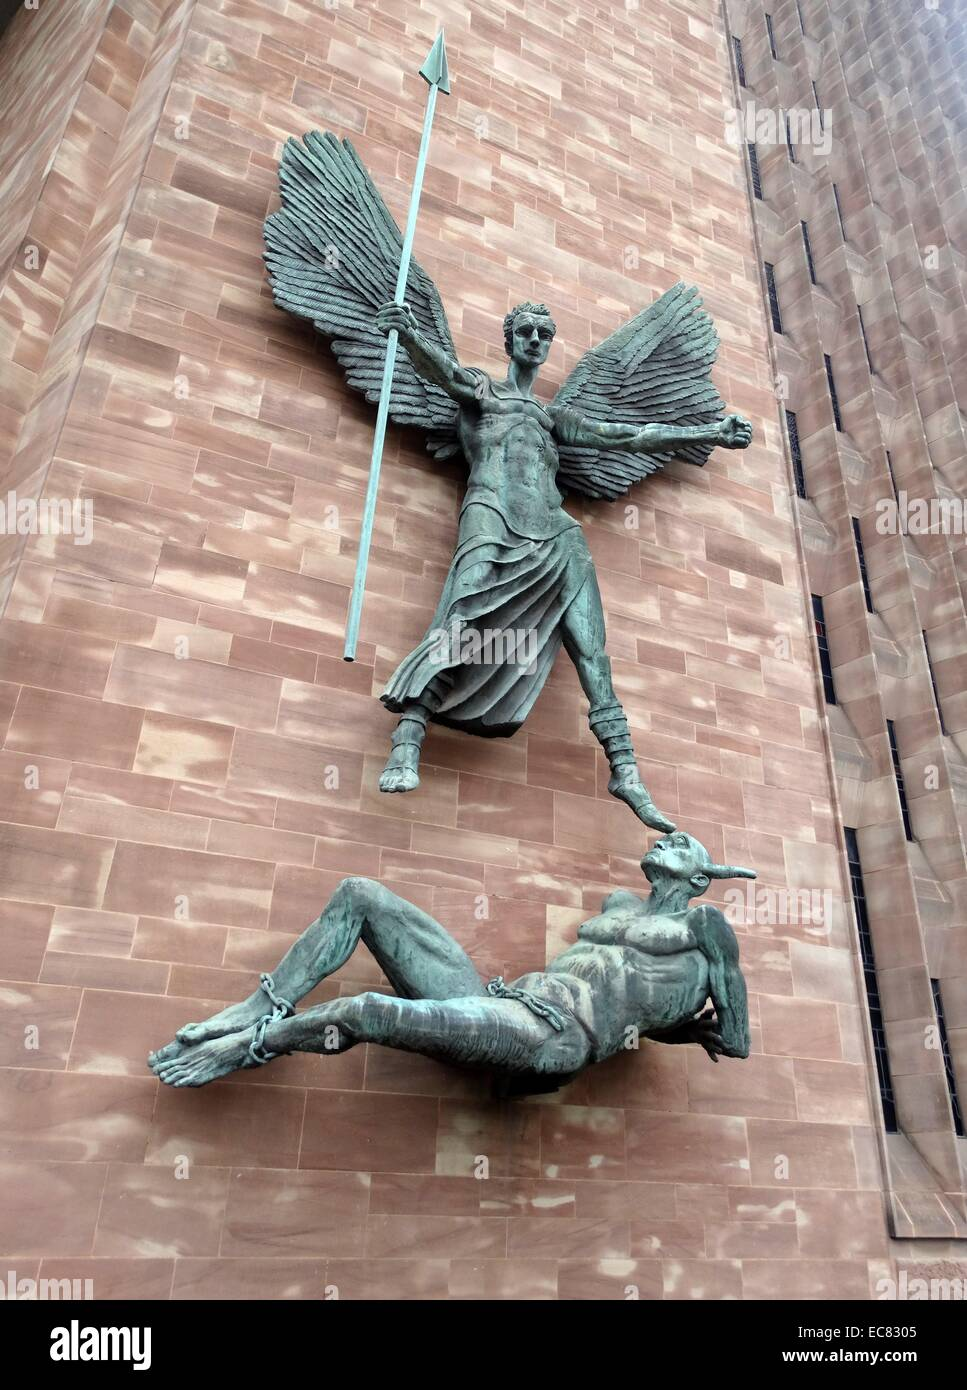 St Michael and the Devil. Sculpture by Jacob Epstein at St Michael's Cathedral, Coventry - Stock Image